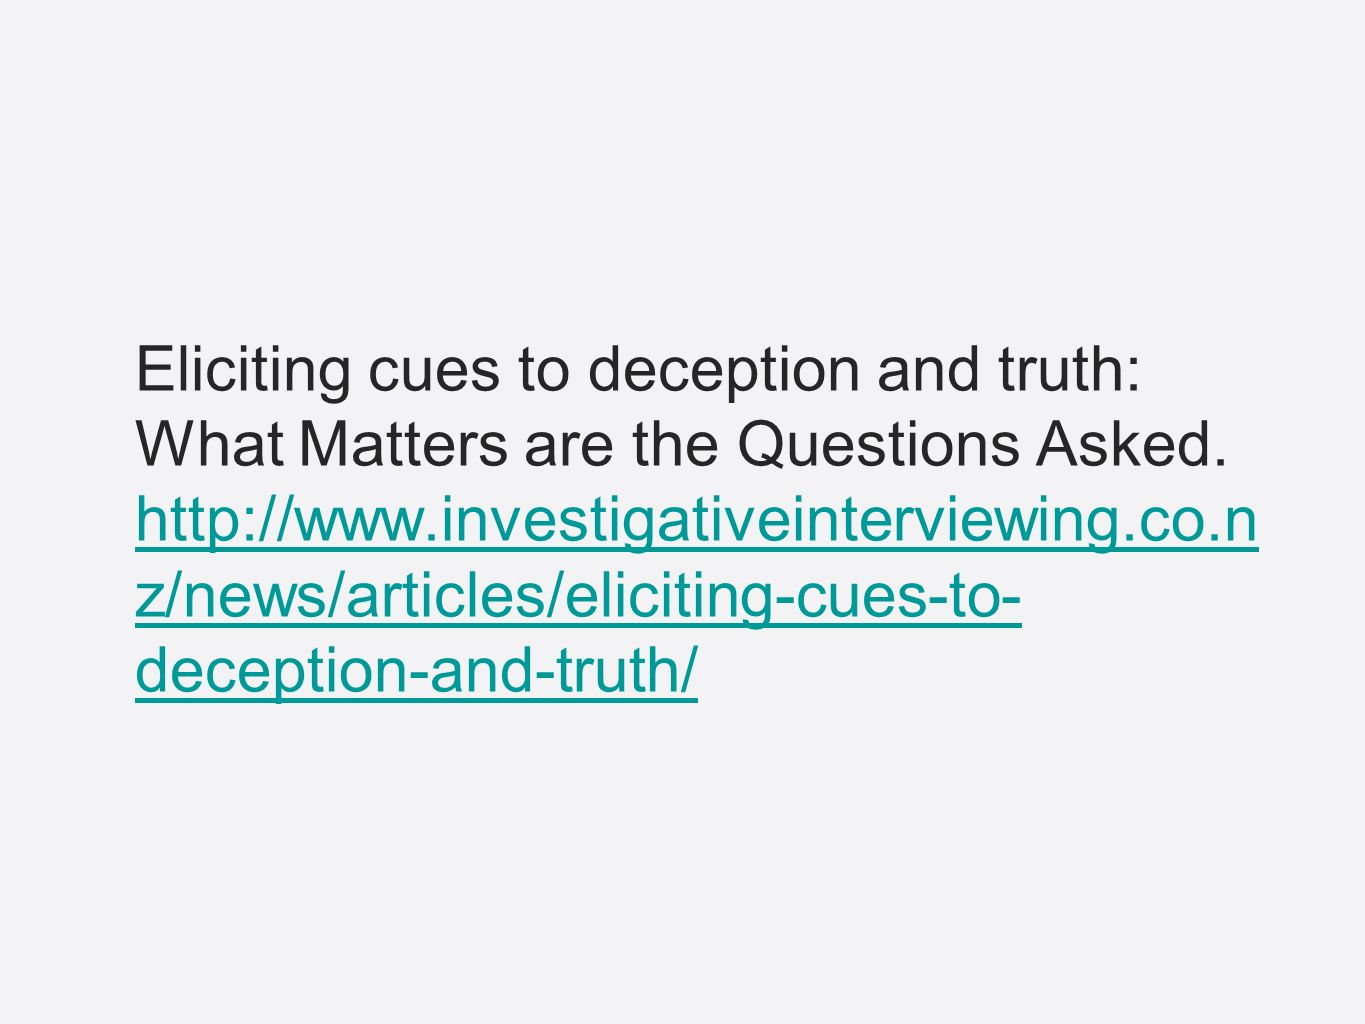 Eliciting cues to deception and truth: What Matters are the Questions Asked.